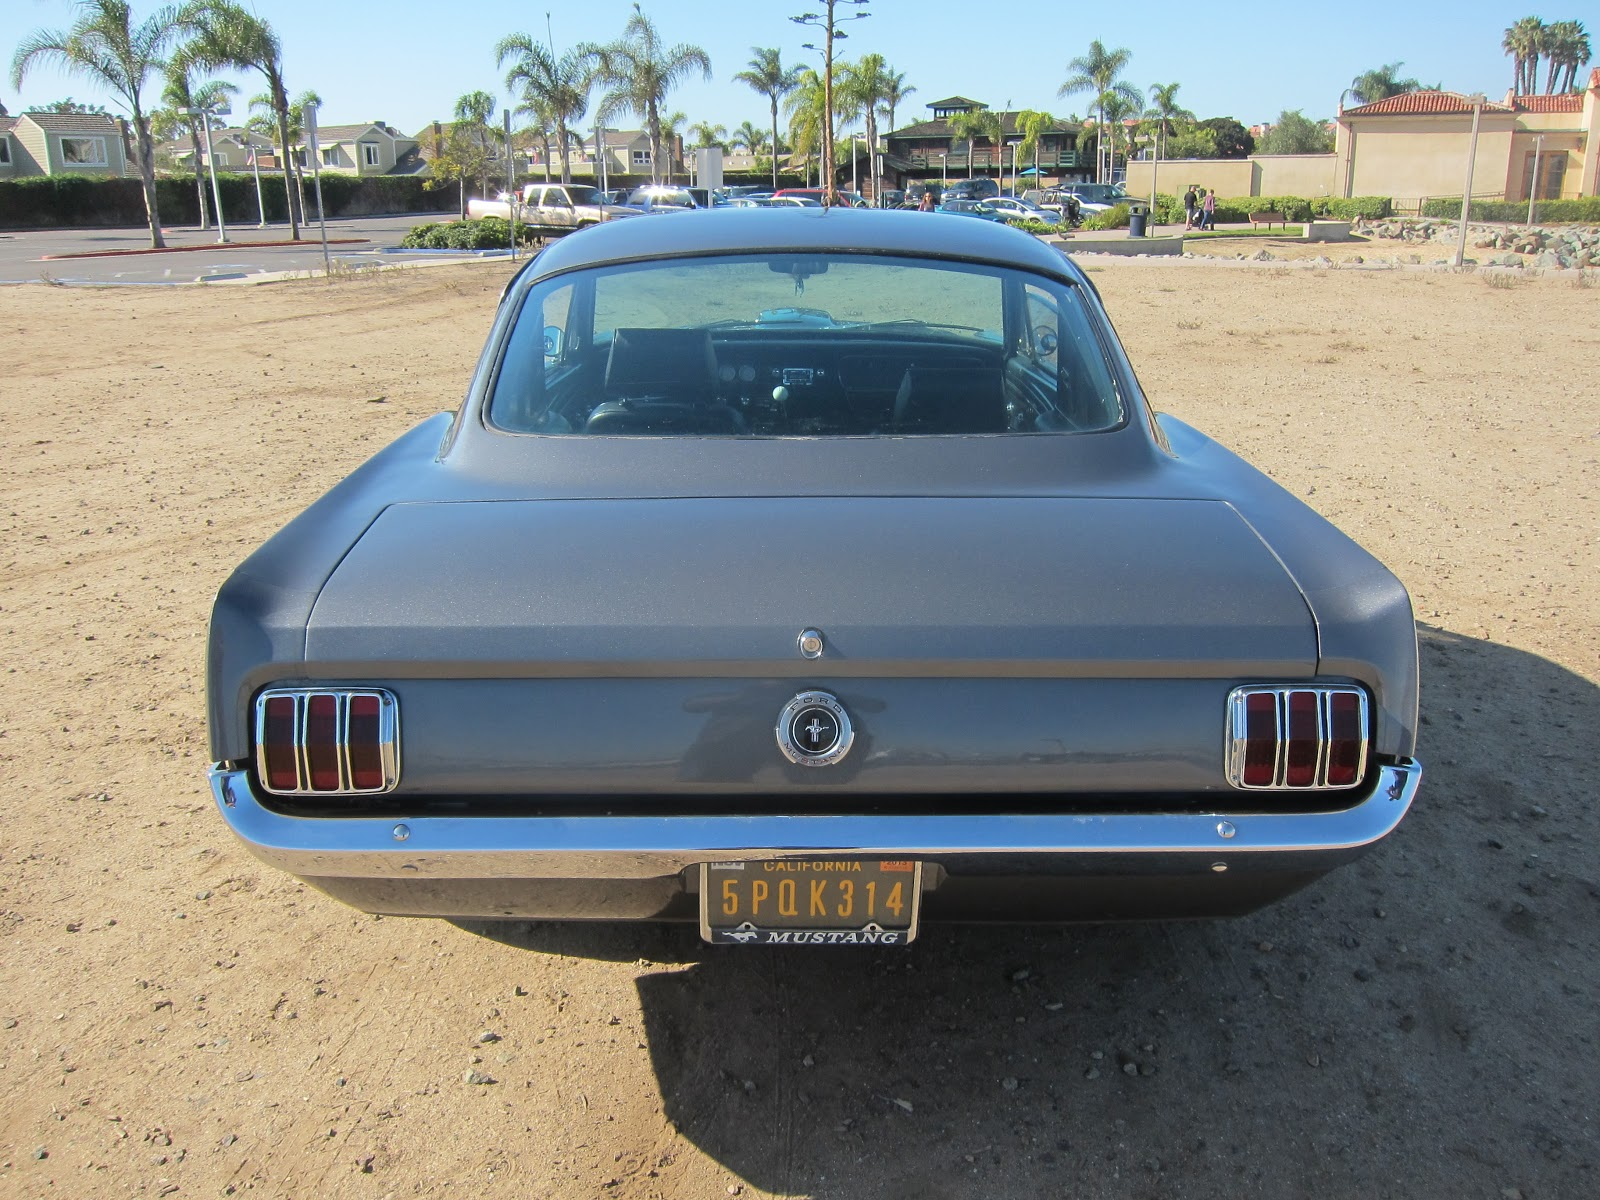 1965 mustang fastback 21 obo for 1965 mustang window adjustment